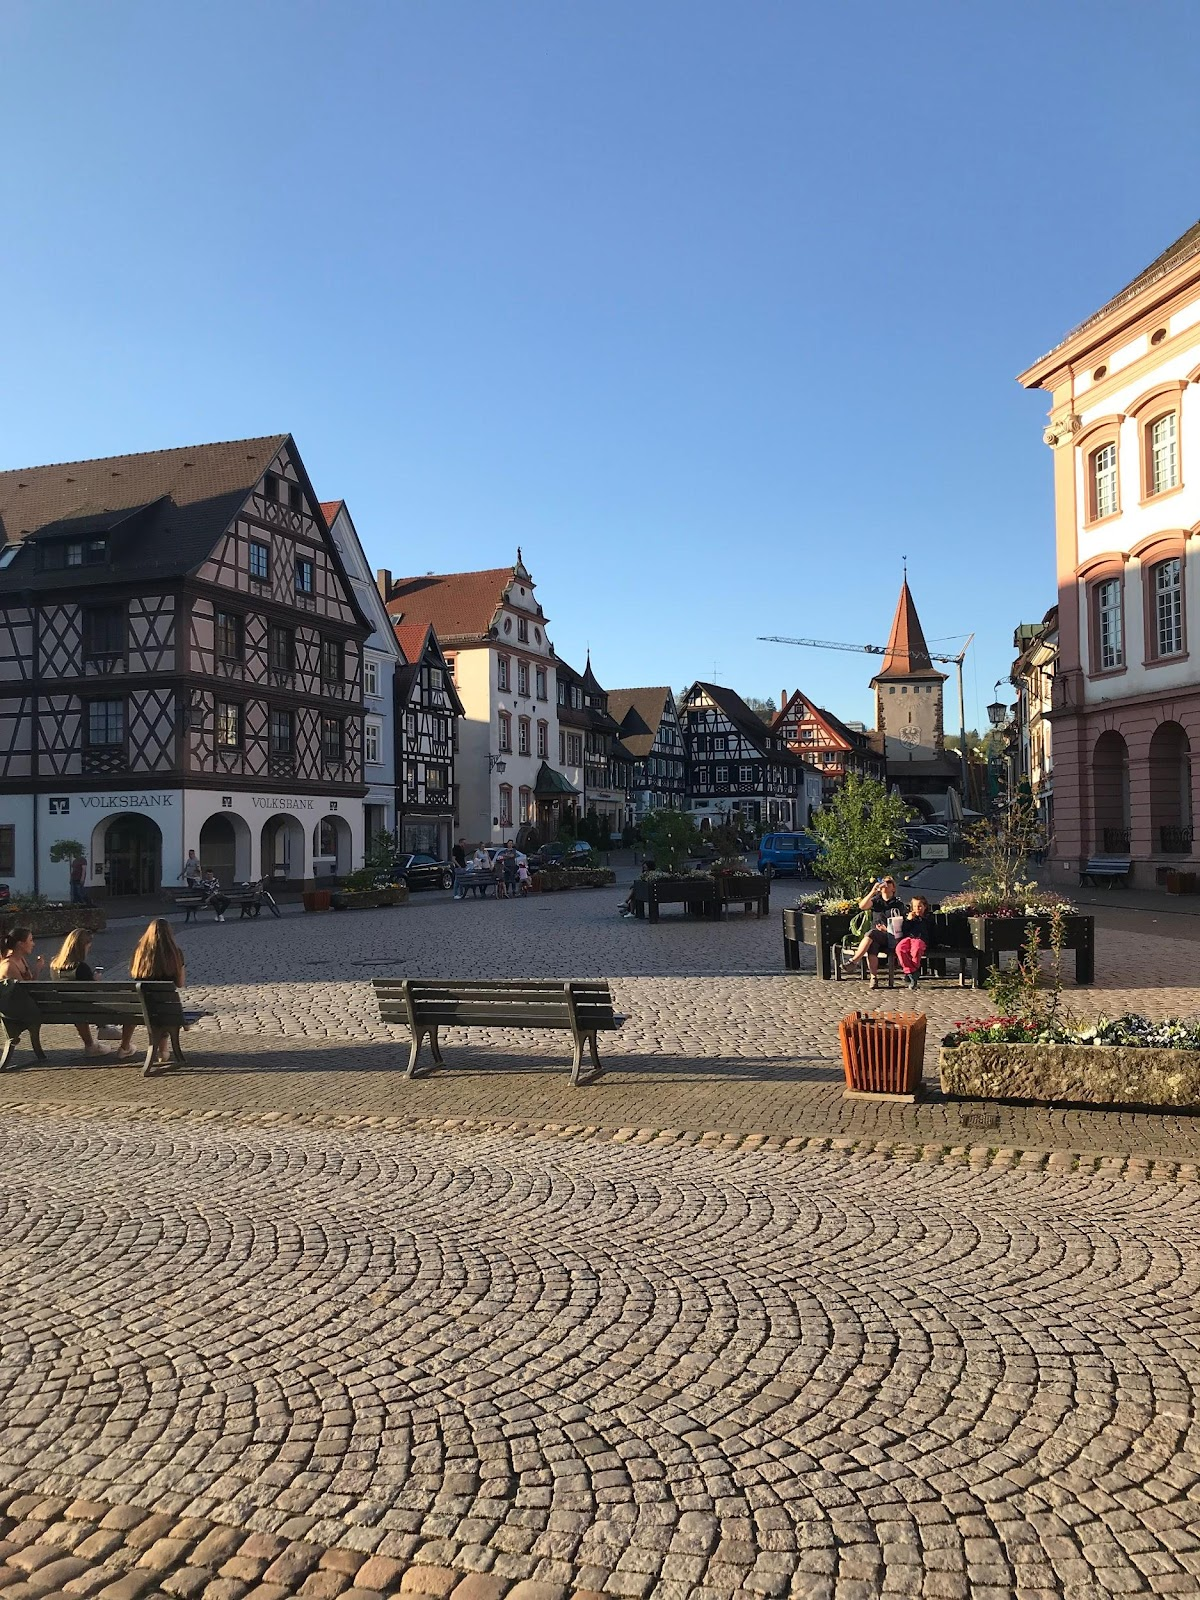 gengenbach medieval city center traditional bavarian wooden bright buildings small square people on benches on a clear sunny day in germany